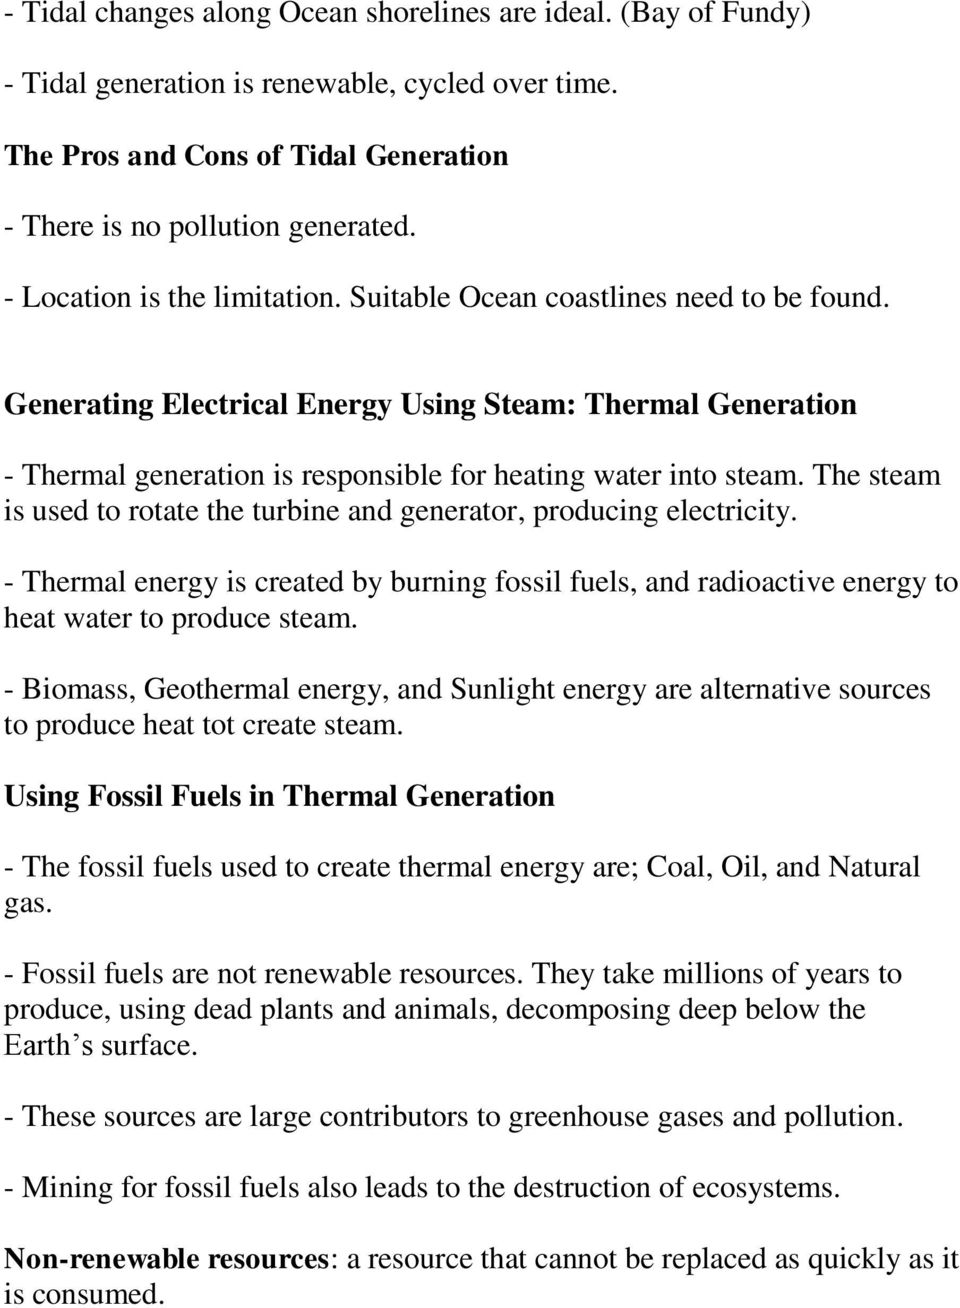 The steam is used to rotate the turbine and generator, producing electricity. - Thermal energy is created by burning fossil fuels, and radioactive energy to heat water to produce steam.